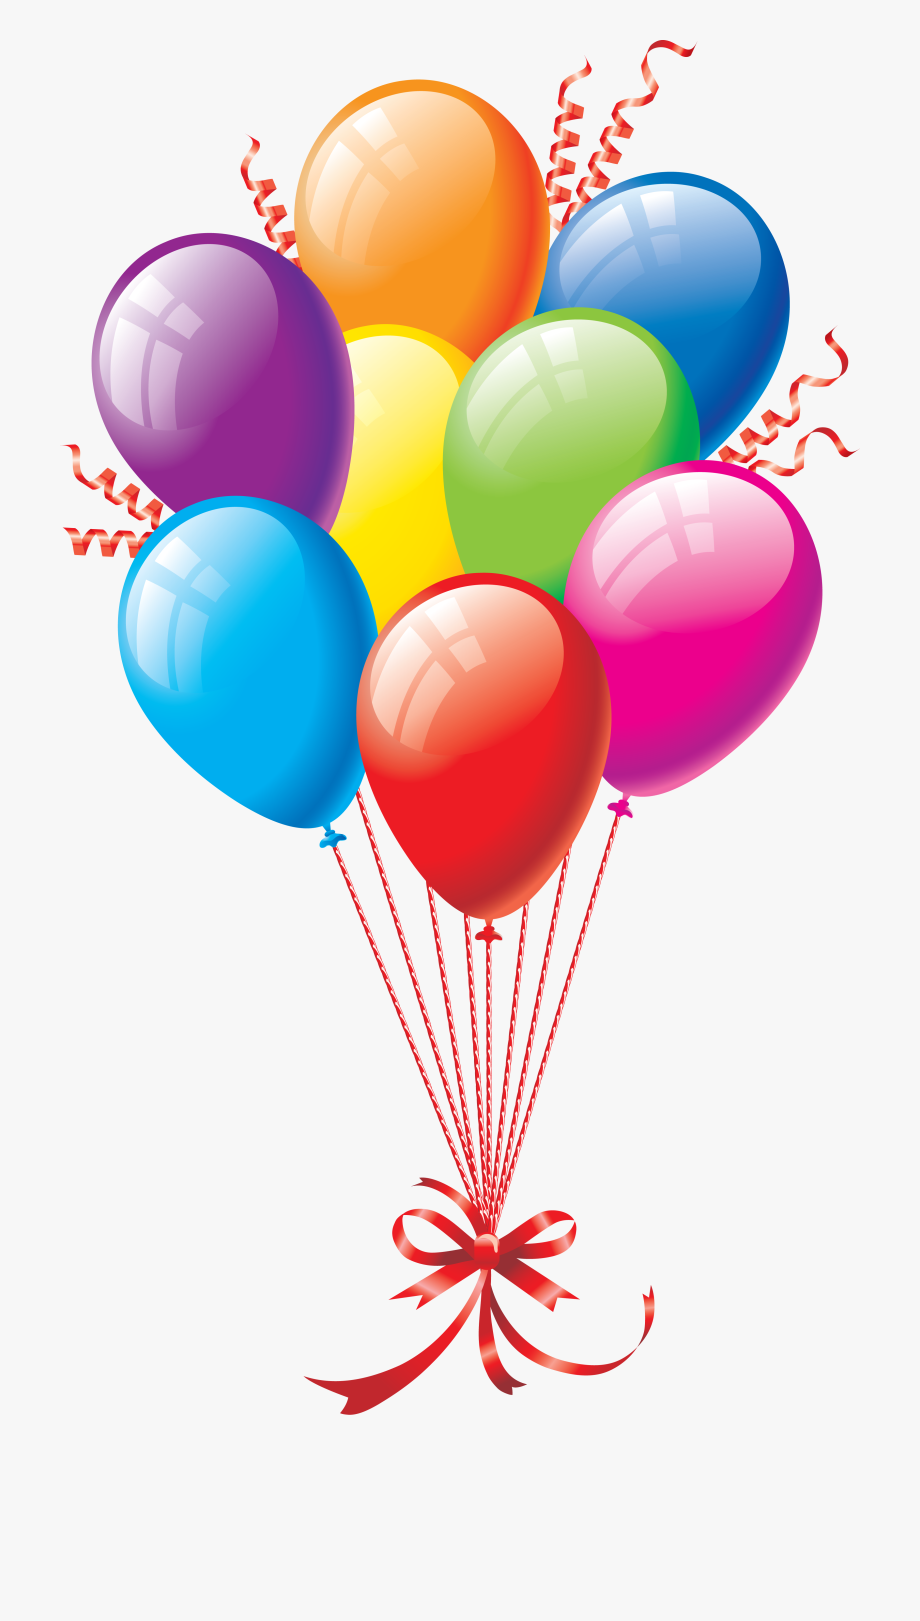 Balloon clipart happy birthday. Clip art background png